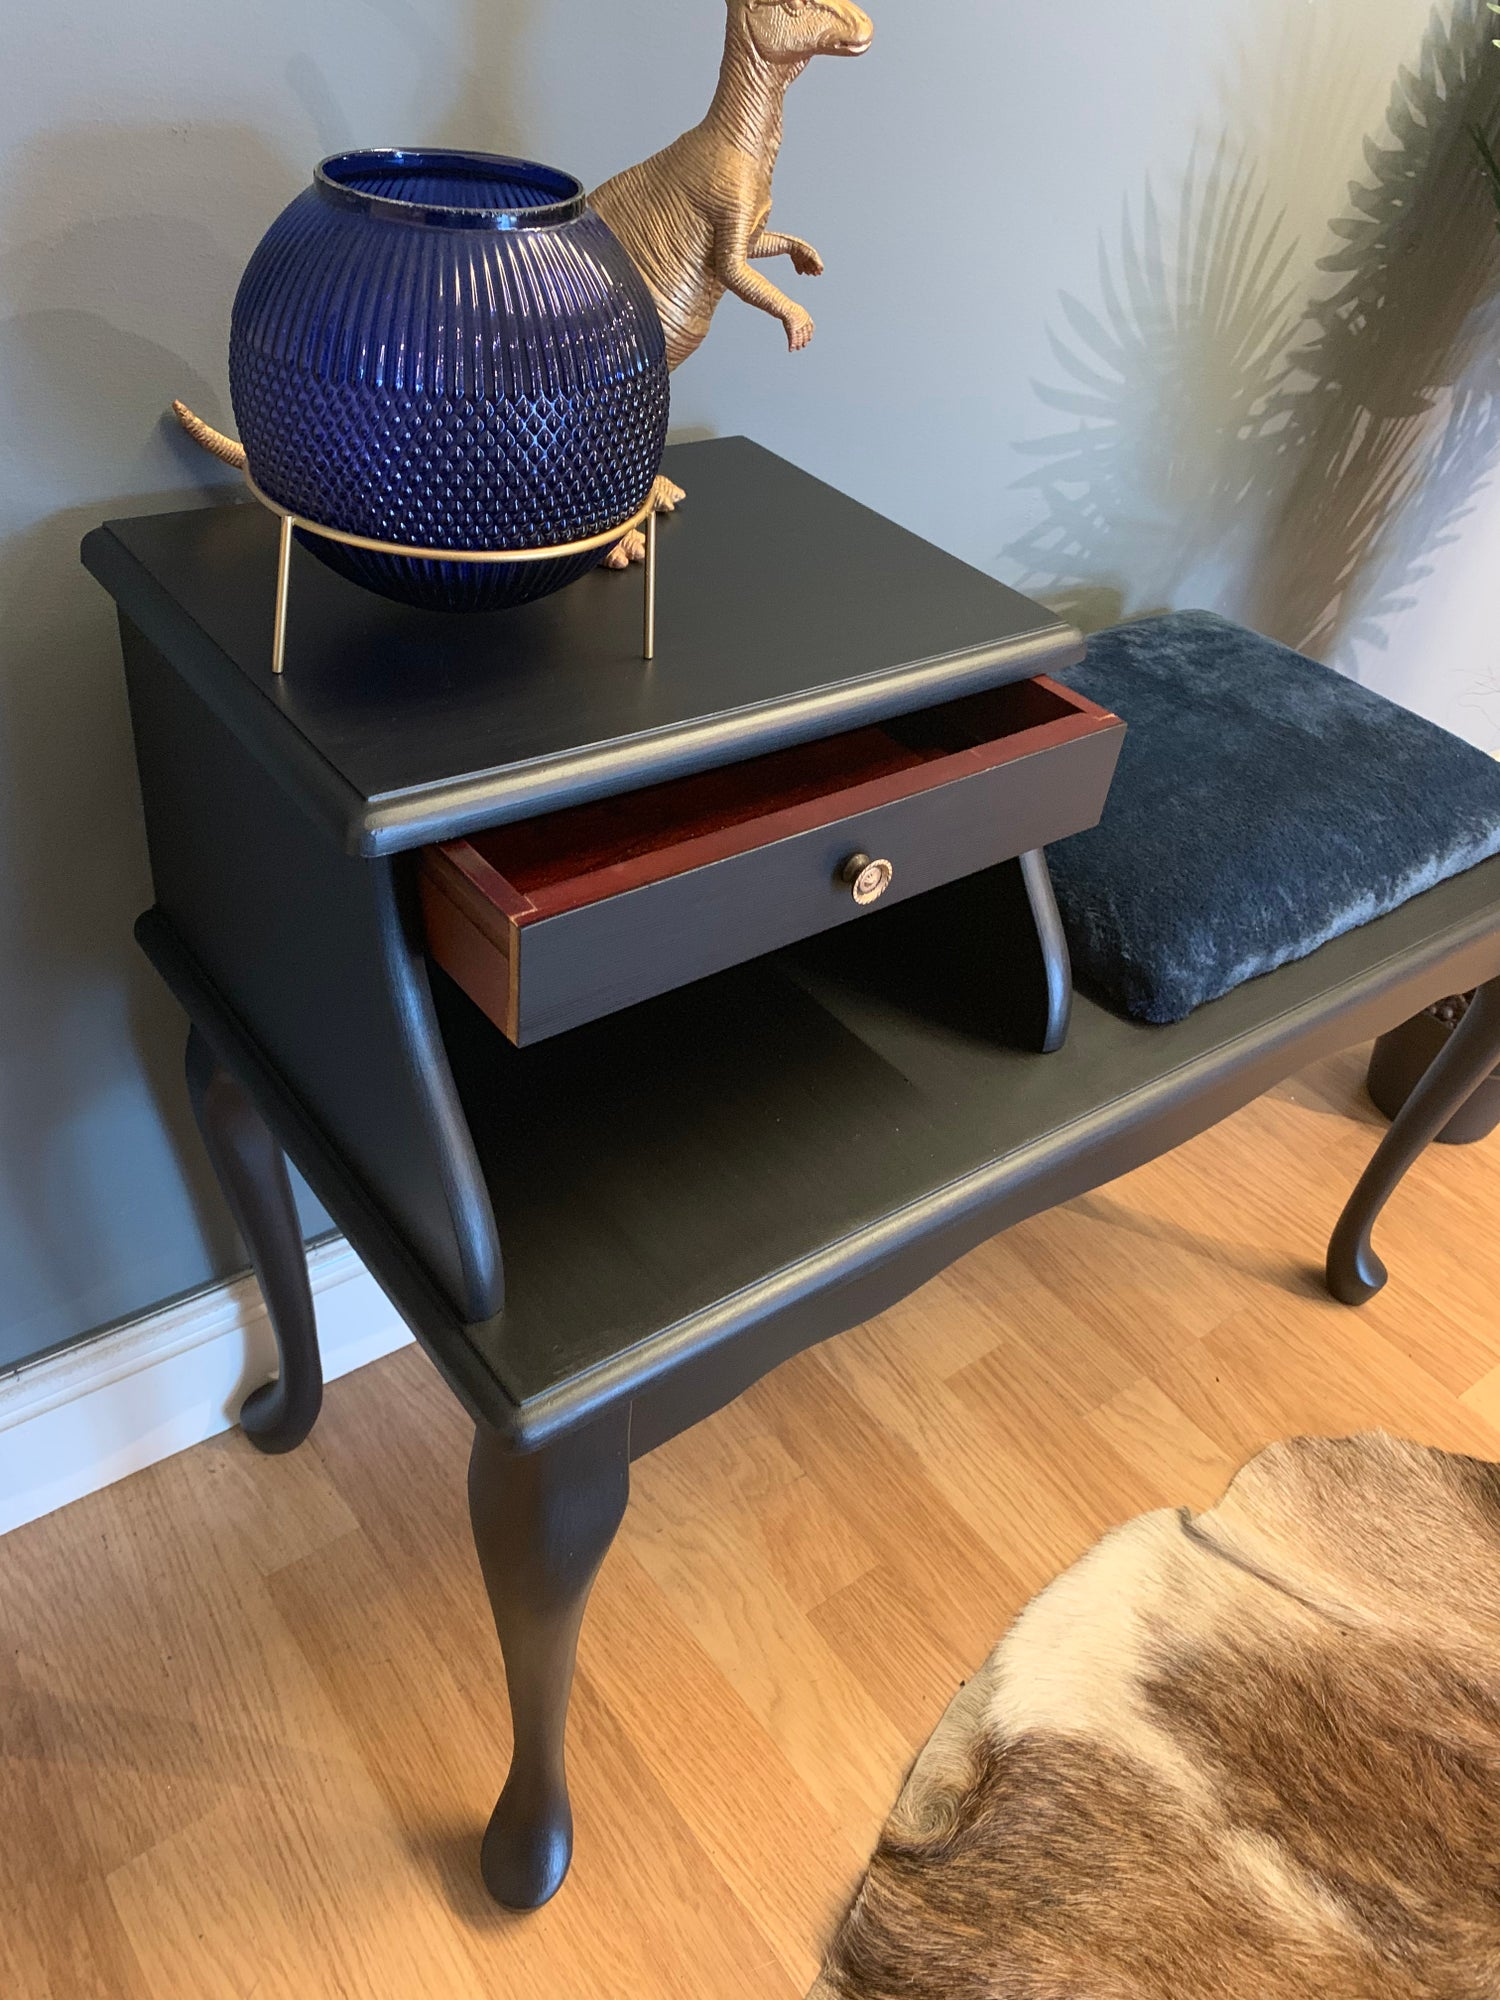 Image of A black telephone table with a navy blue fluffy seat.